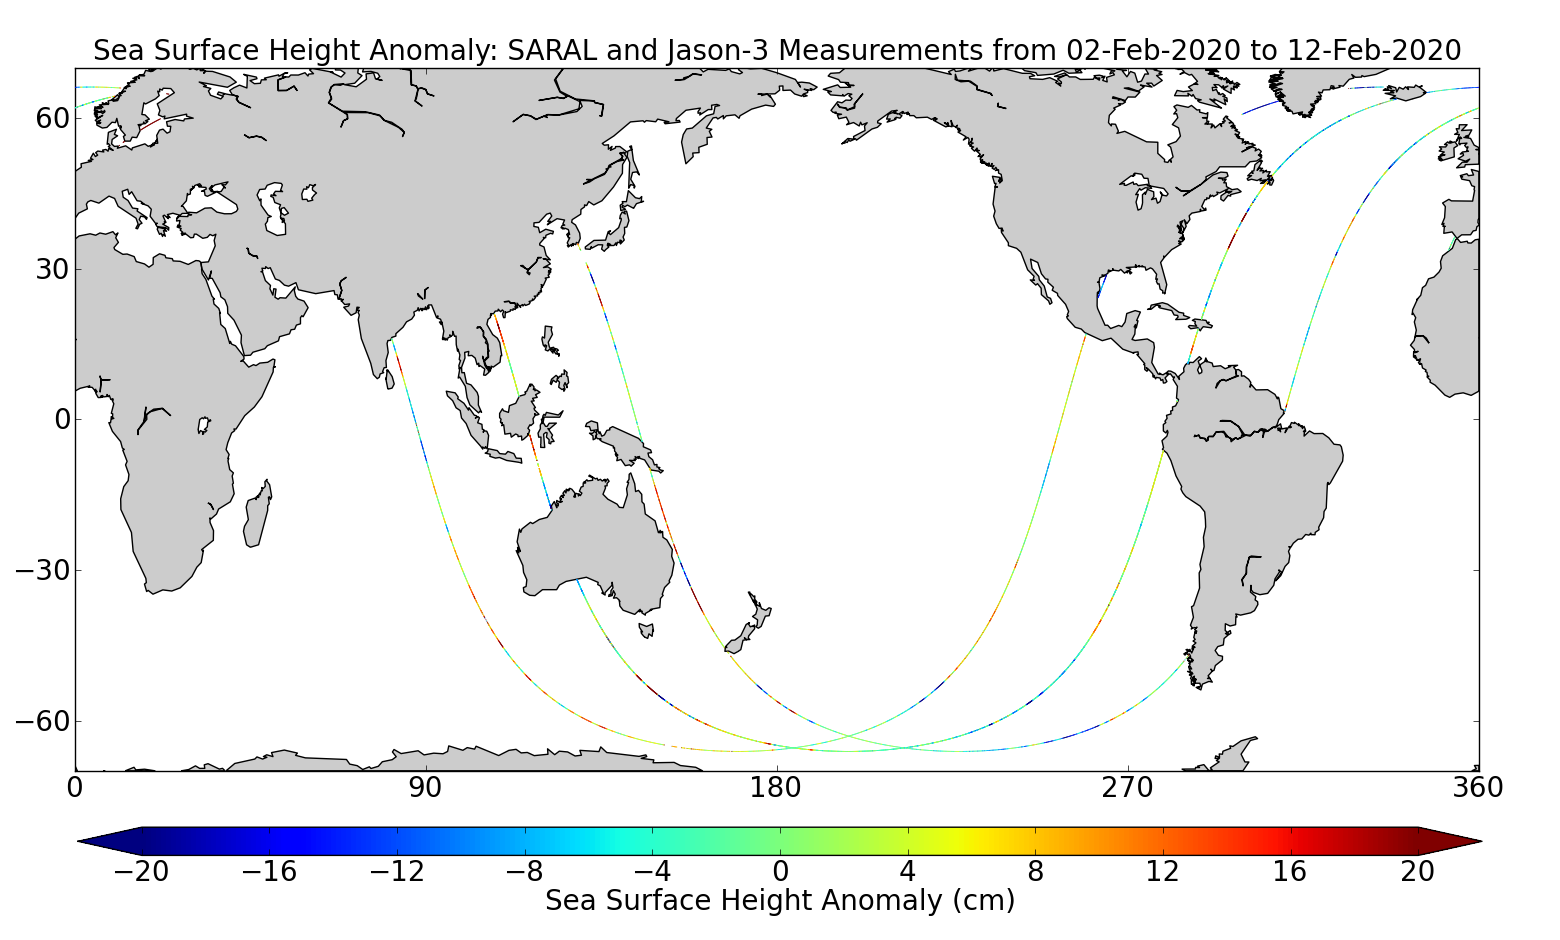 Sea Surface Height Anomaly: SARAL and Jason-3 Measurements from 02-Feb-2020 to 12-Feb-2020